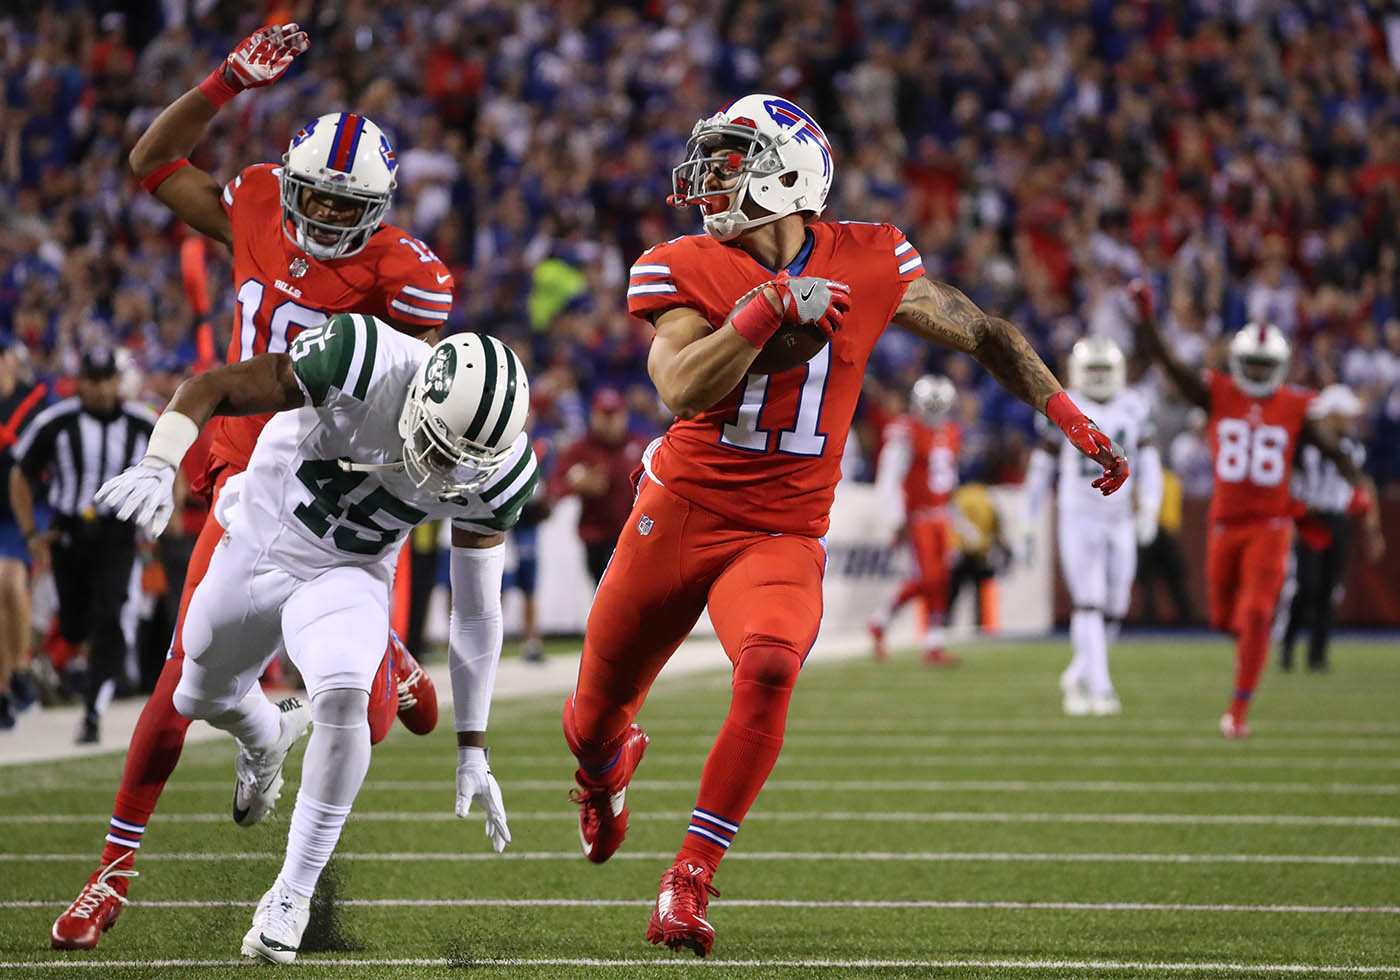 Pictures, Buffalo Bills wide receiver Greg Salas (11) pulls away for a 71-yard touchdown during the second quarter against the Jets at New Era Field in Orchard Park, N.Y. on Thursday, Sept. 15, 2016. (James P. McCoy/ Buffalo News)